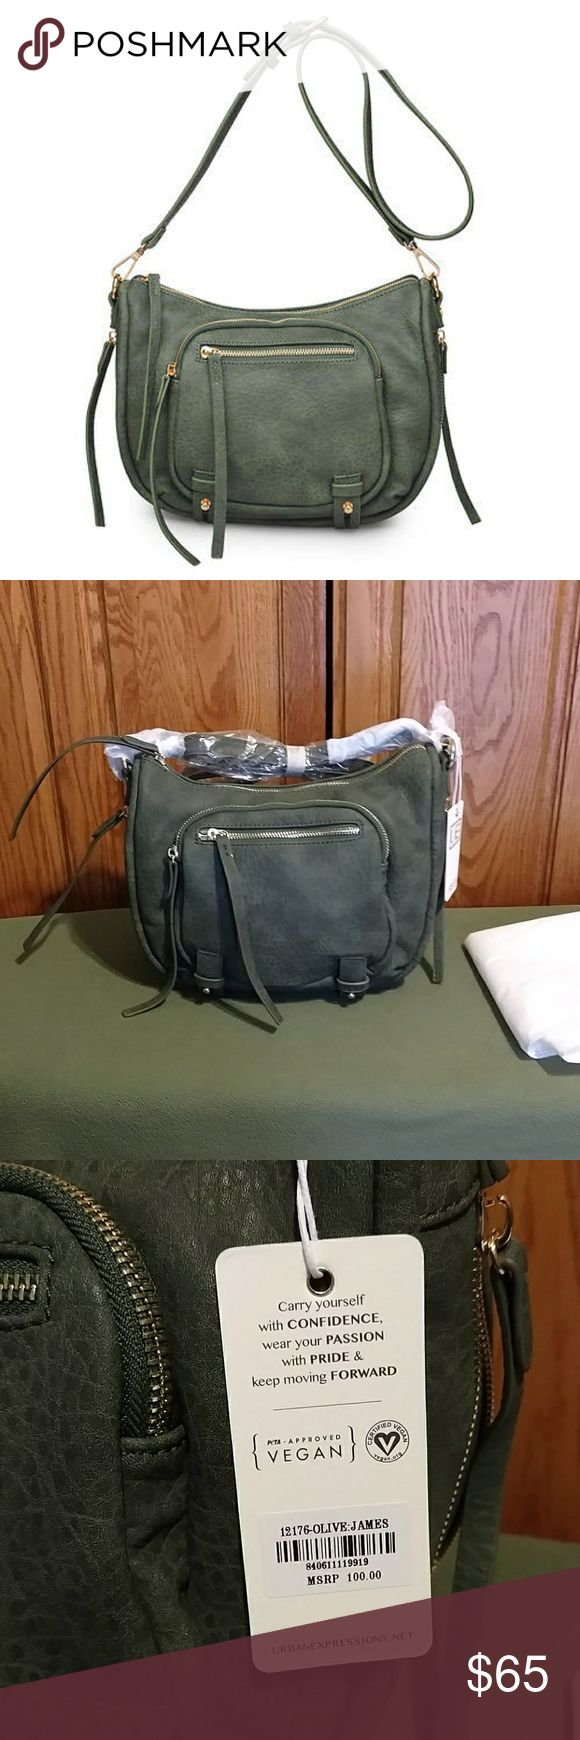 """Urban Expressions Vegan Crossbody Single detachable, adjustable crossbody strap. Zip too closure. Exterior features 2 front zip pockets and bottom zip extension. Interior features 1 zip wall pocket and 2 media pockets. Includes dust bag. 8h x 11w x 5 D. Strap drop 21""""-26"""". NWT color is olive. Beautiful soft bag. Urban Expressions Bags"""